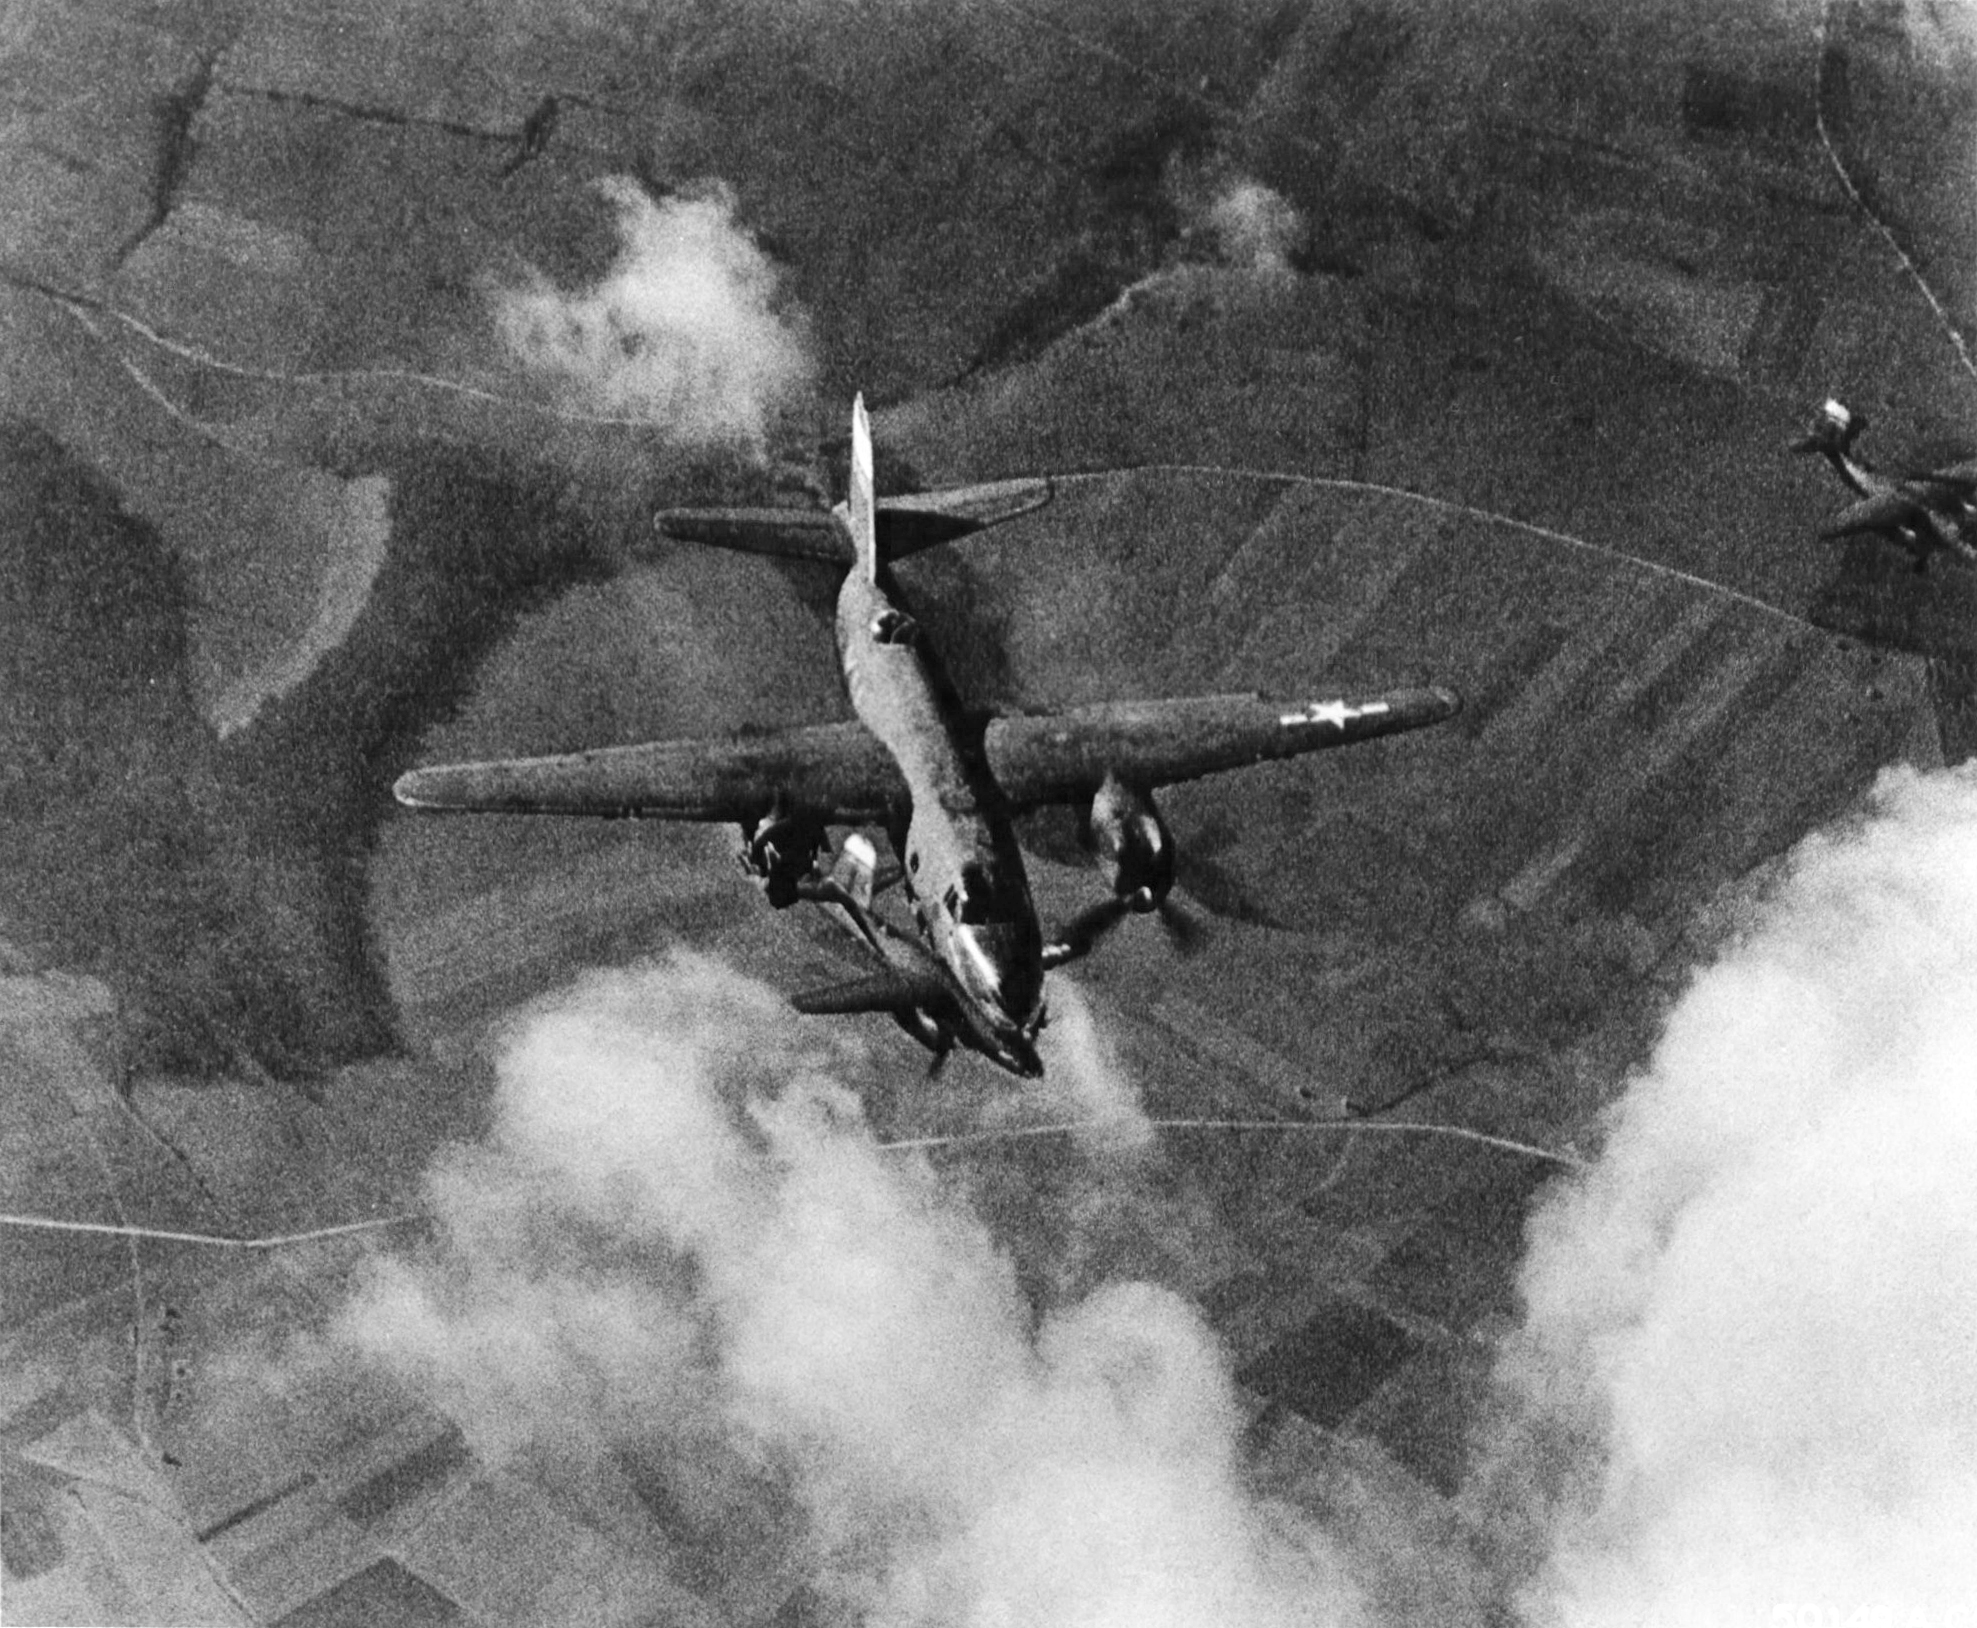 USAAF 41 35000 B 26C Marauder 323BG455BS YUR Swamp Chicken hit by flak over France 55 Feb 1944 MACR 2056 03